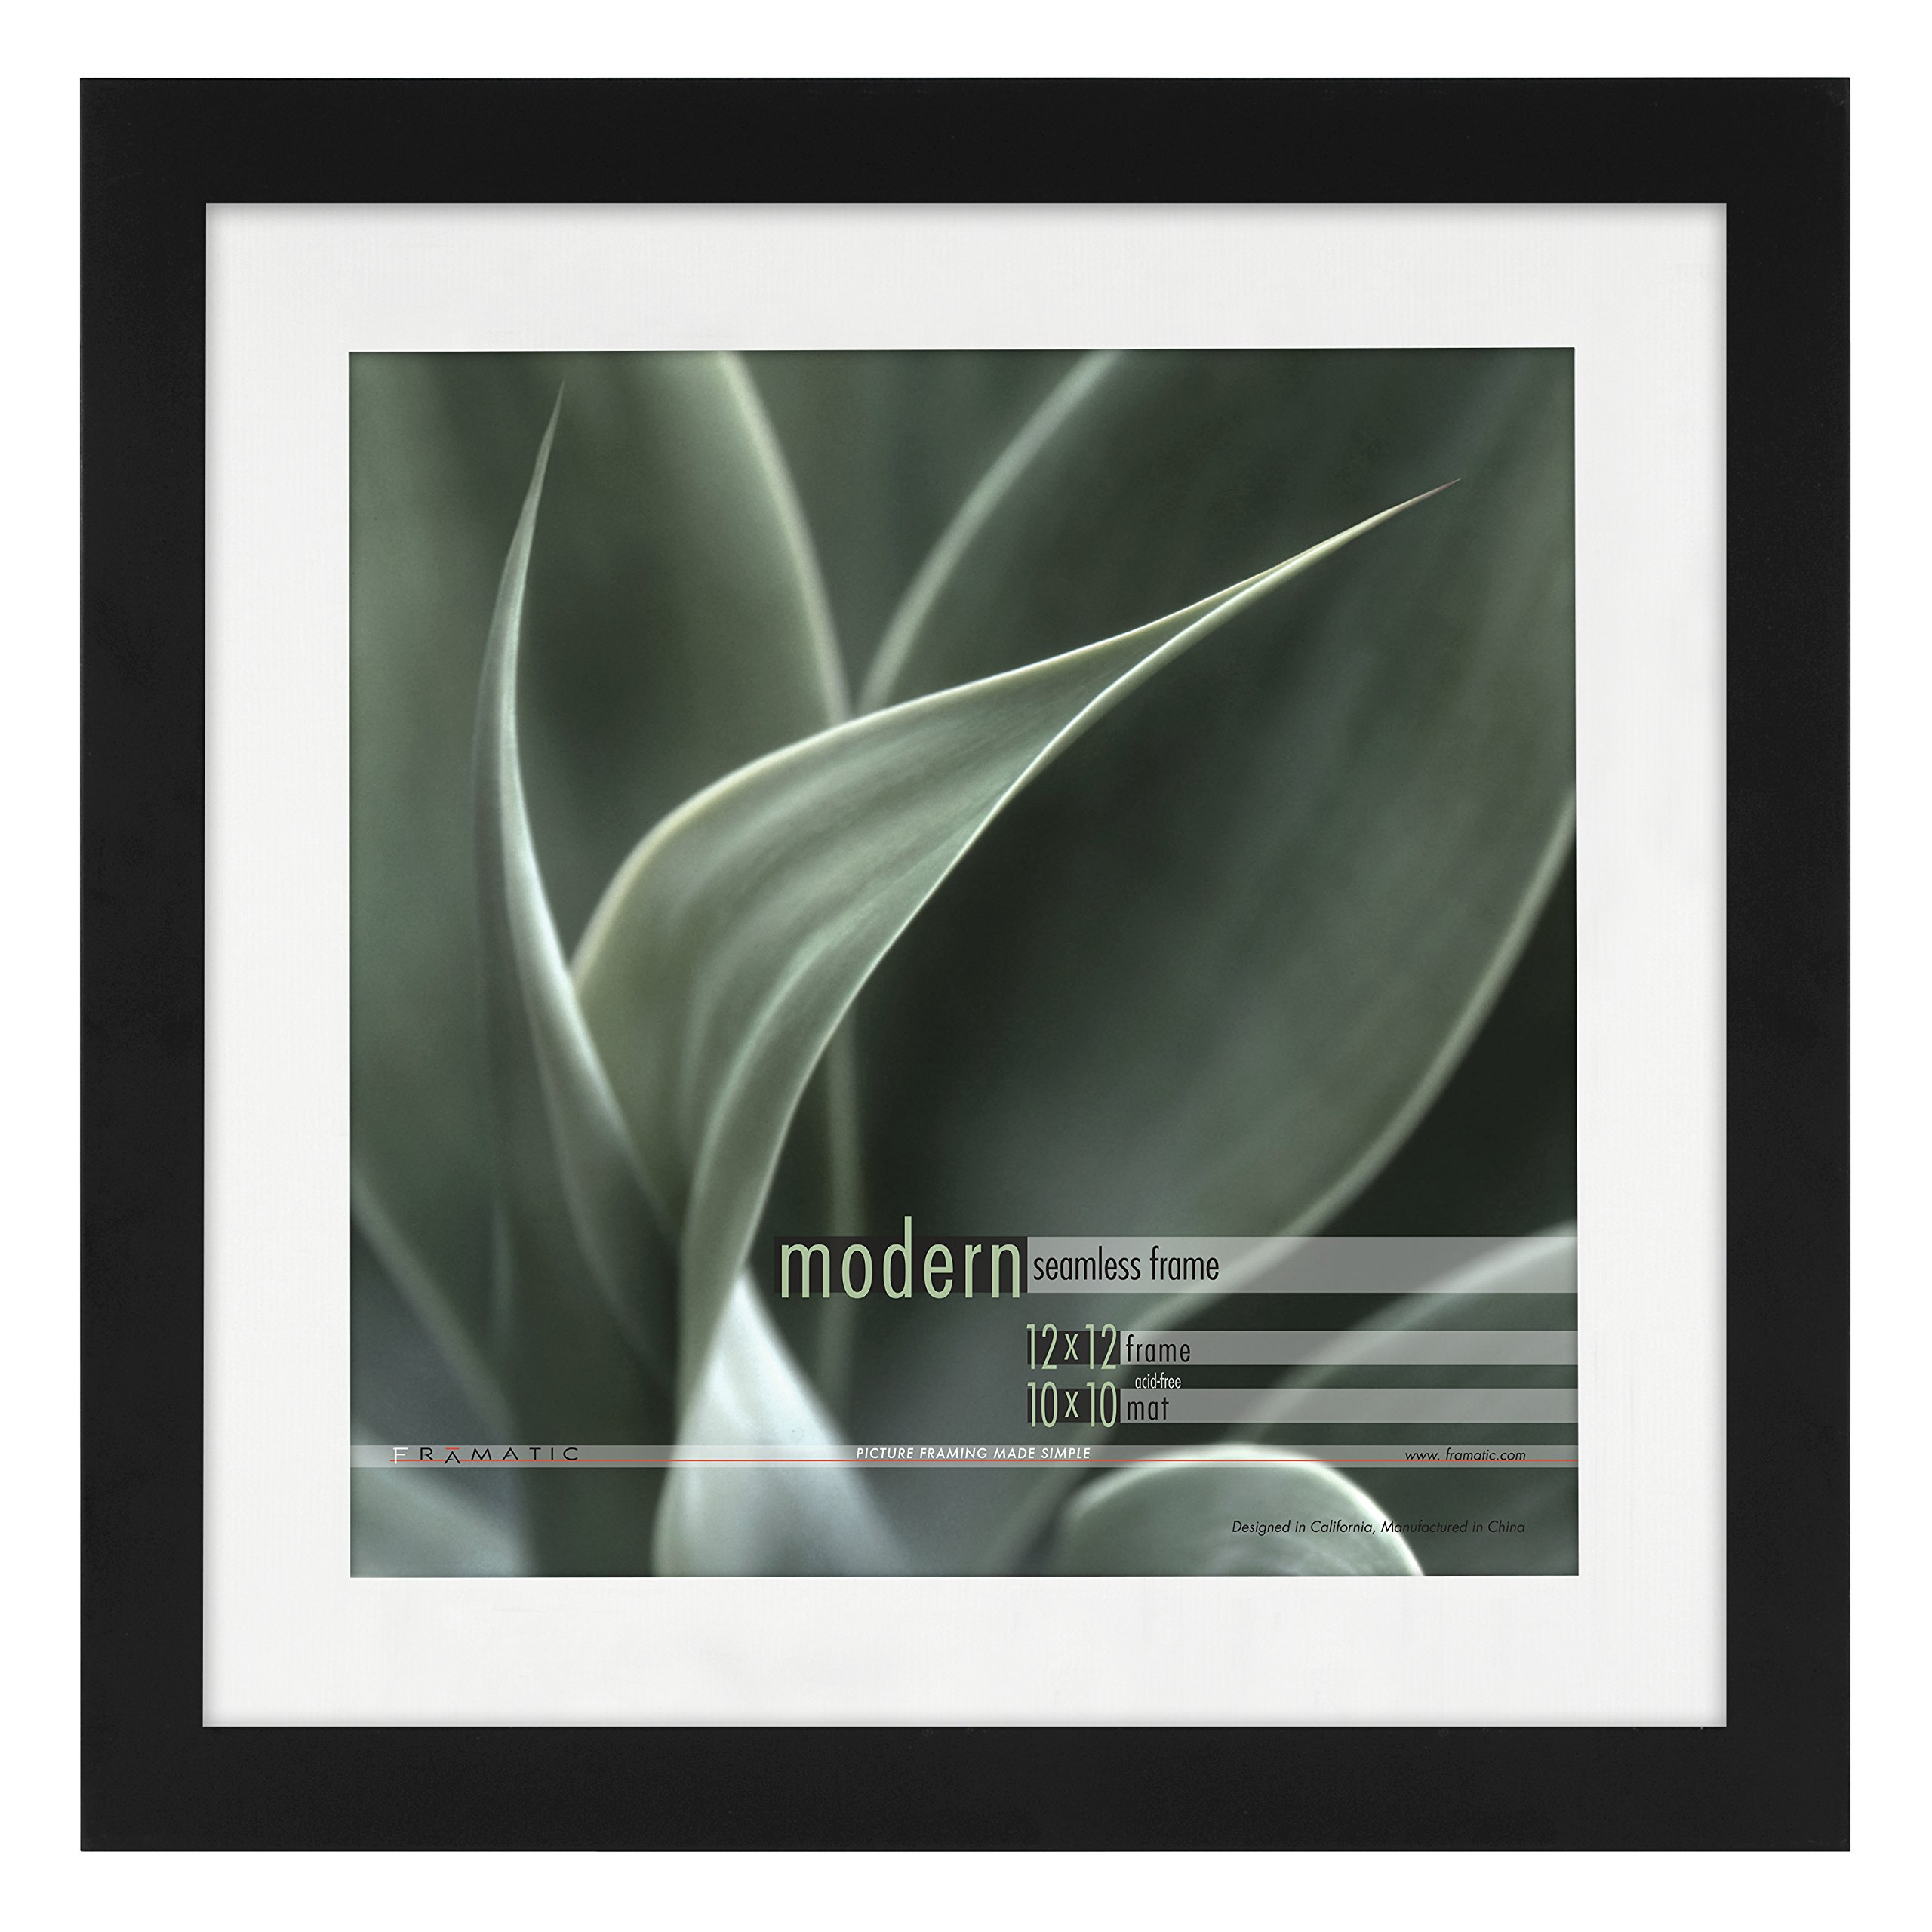 Framatic Modern 12x12 Inch Frame Matted for 10x10 Inch Photo, Black (302196)